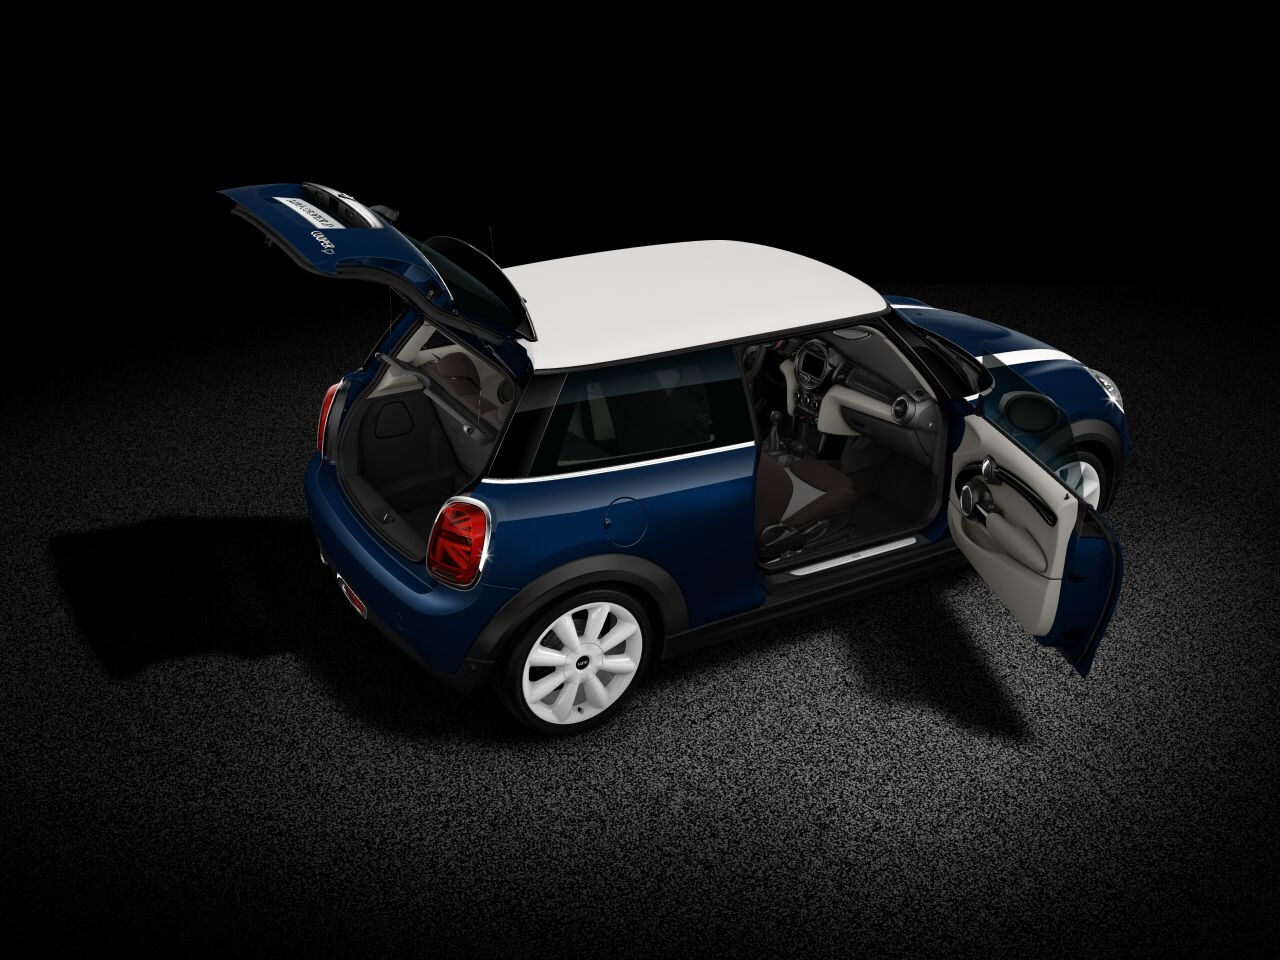 MINI Cooper D 3 Door full open body profile view